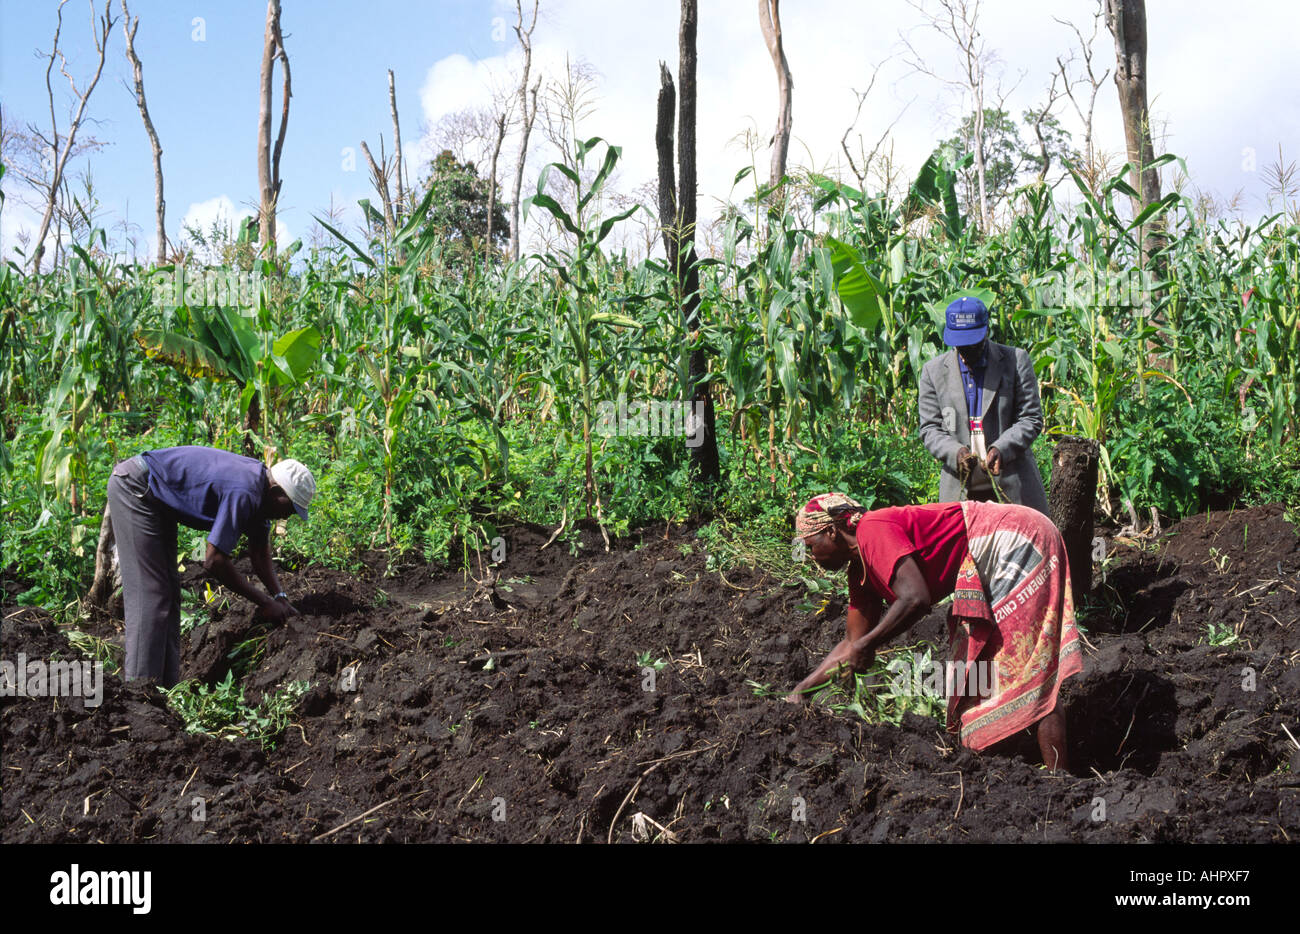 Villagers preparing land for maize growing, Mozambique - Stock Image